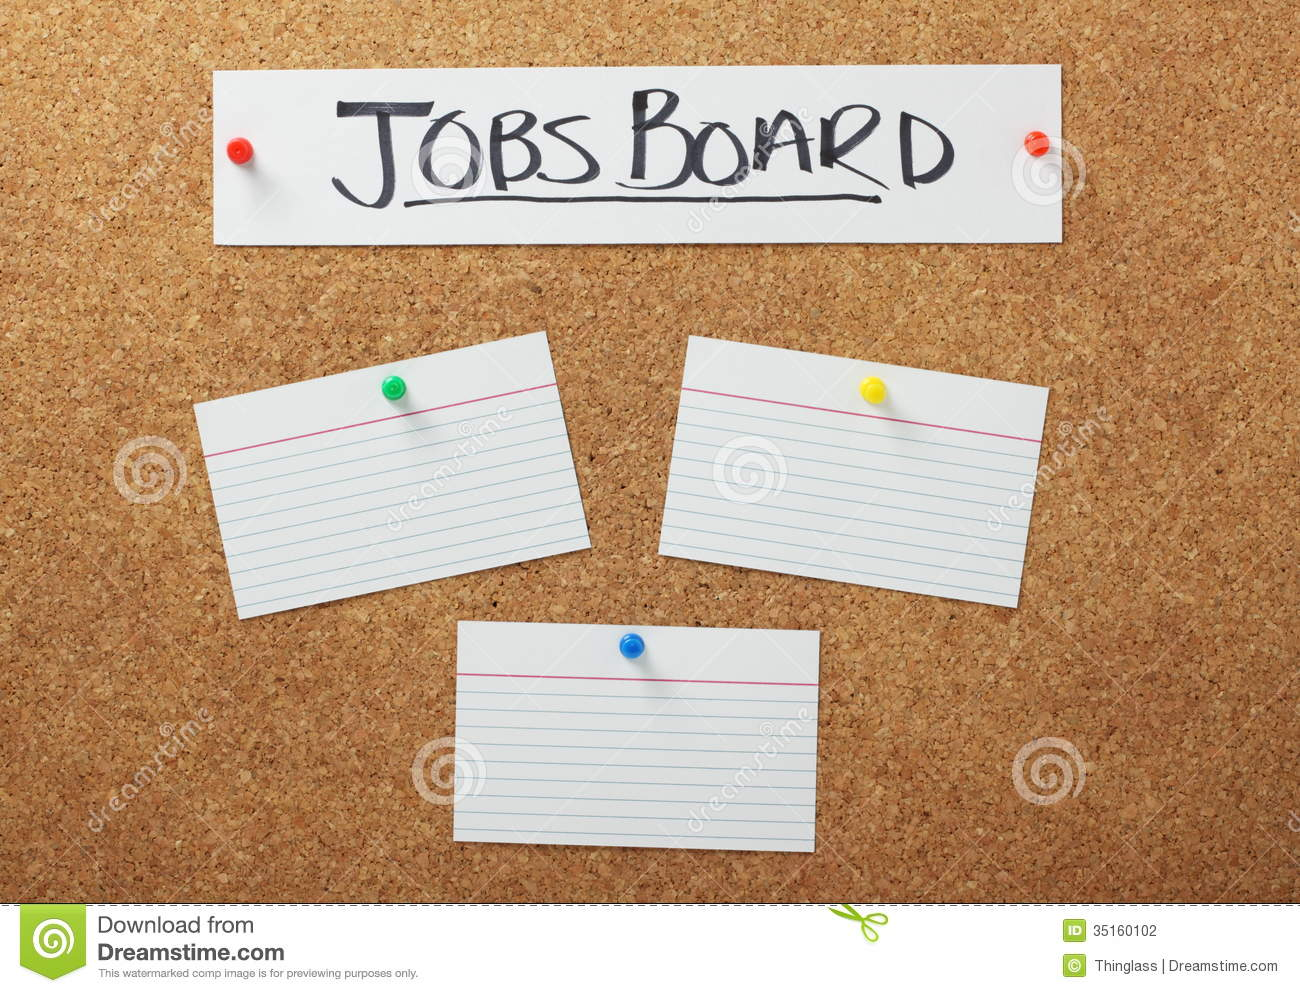 vector job boards related keywords suggestions vector job cards as a concept for job searching and employment opportunities